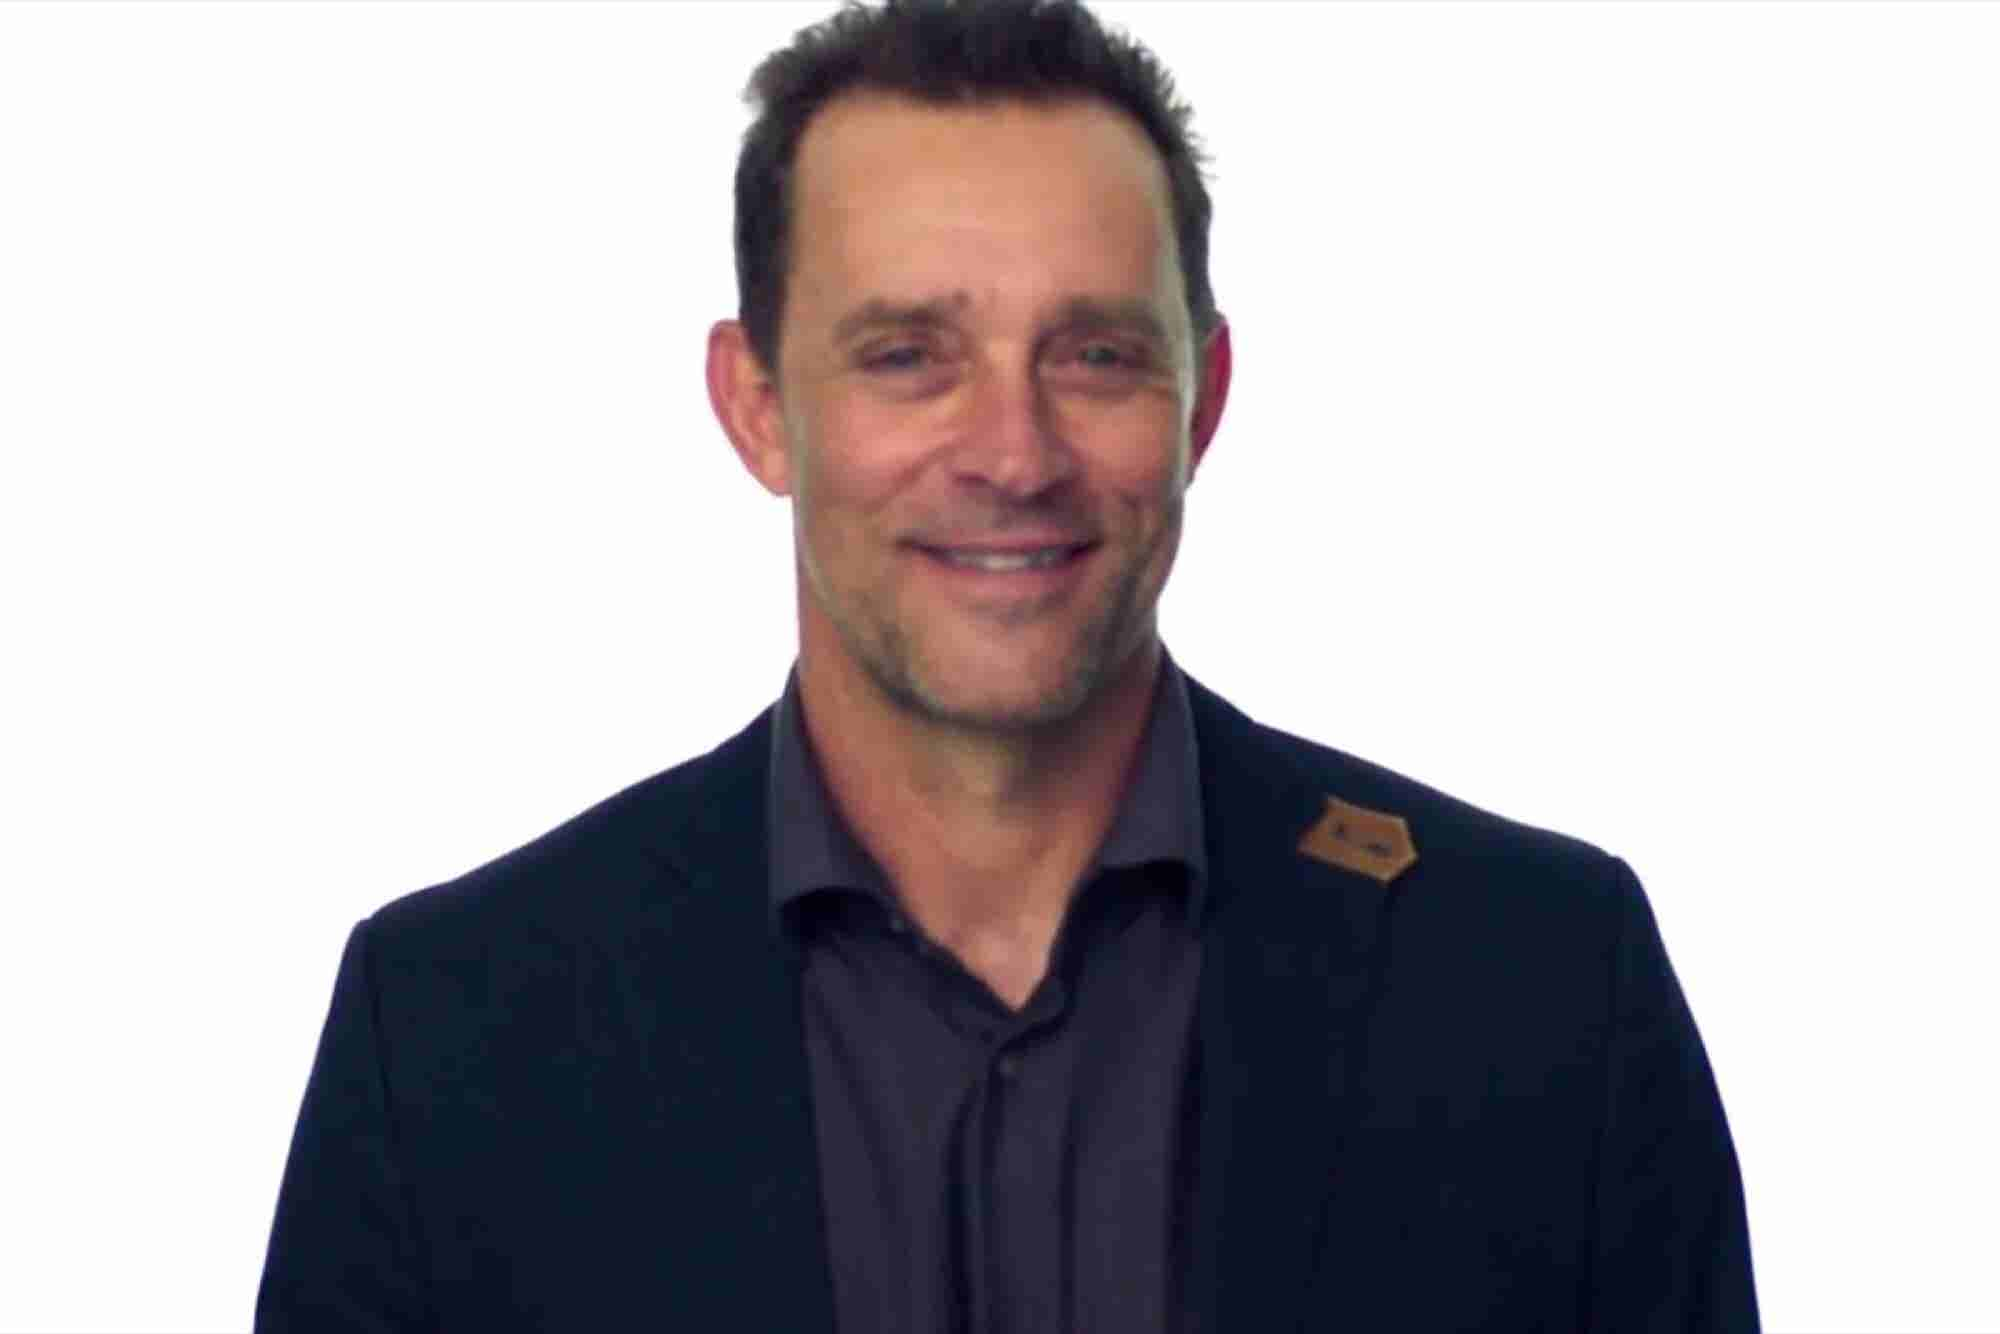 Need Some Inspiration to Start Your Week? Watch This Former Navy SEAL Explain How Starting a Company Has Changed His Life.